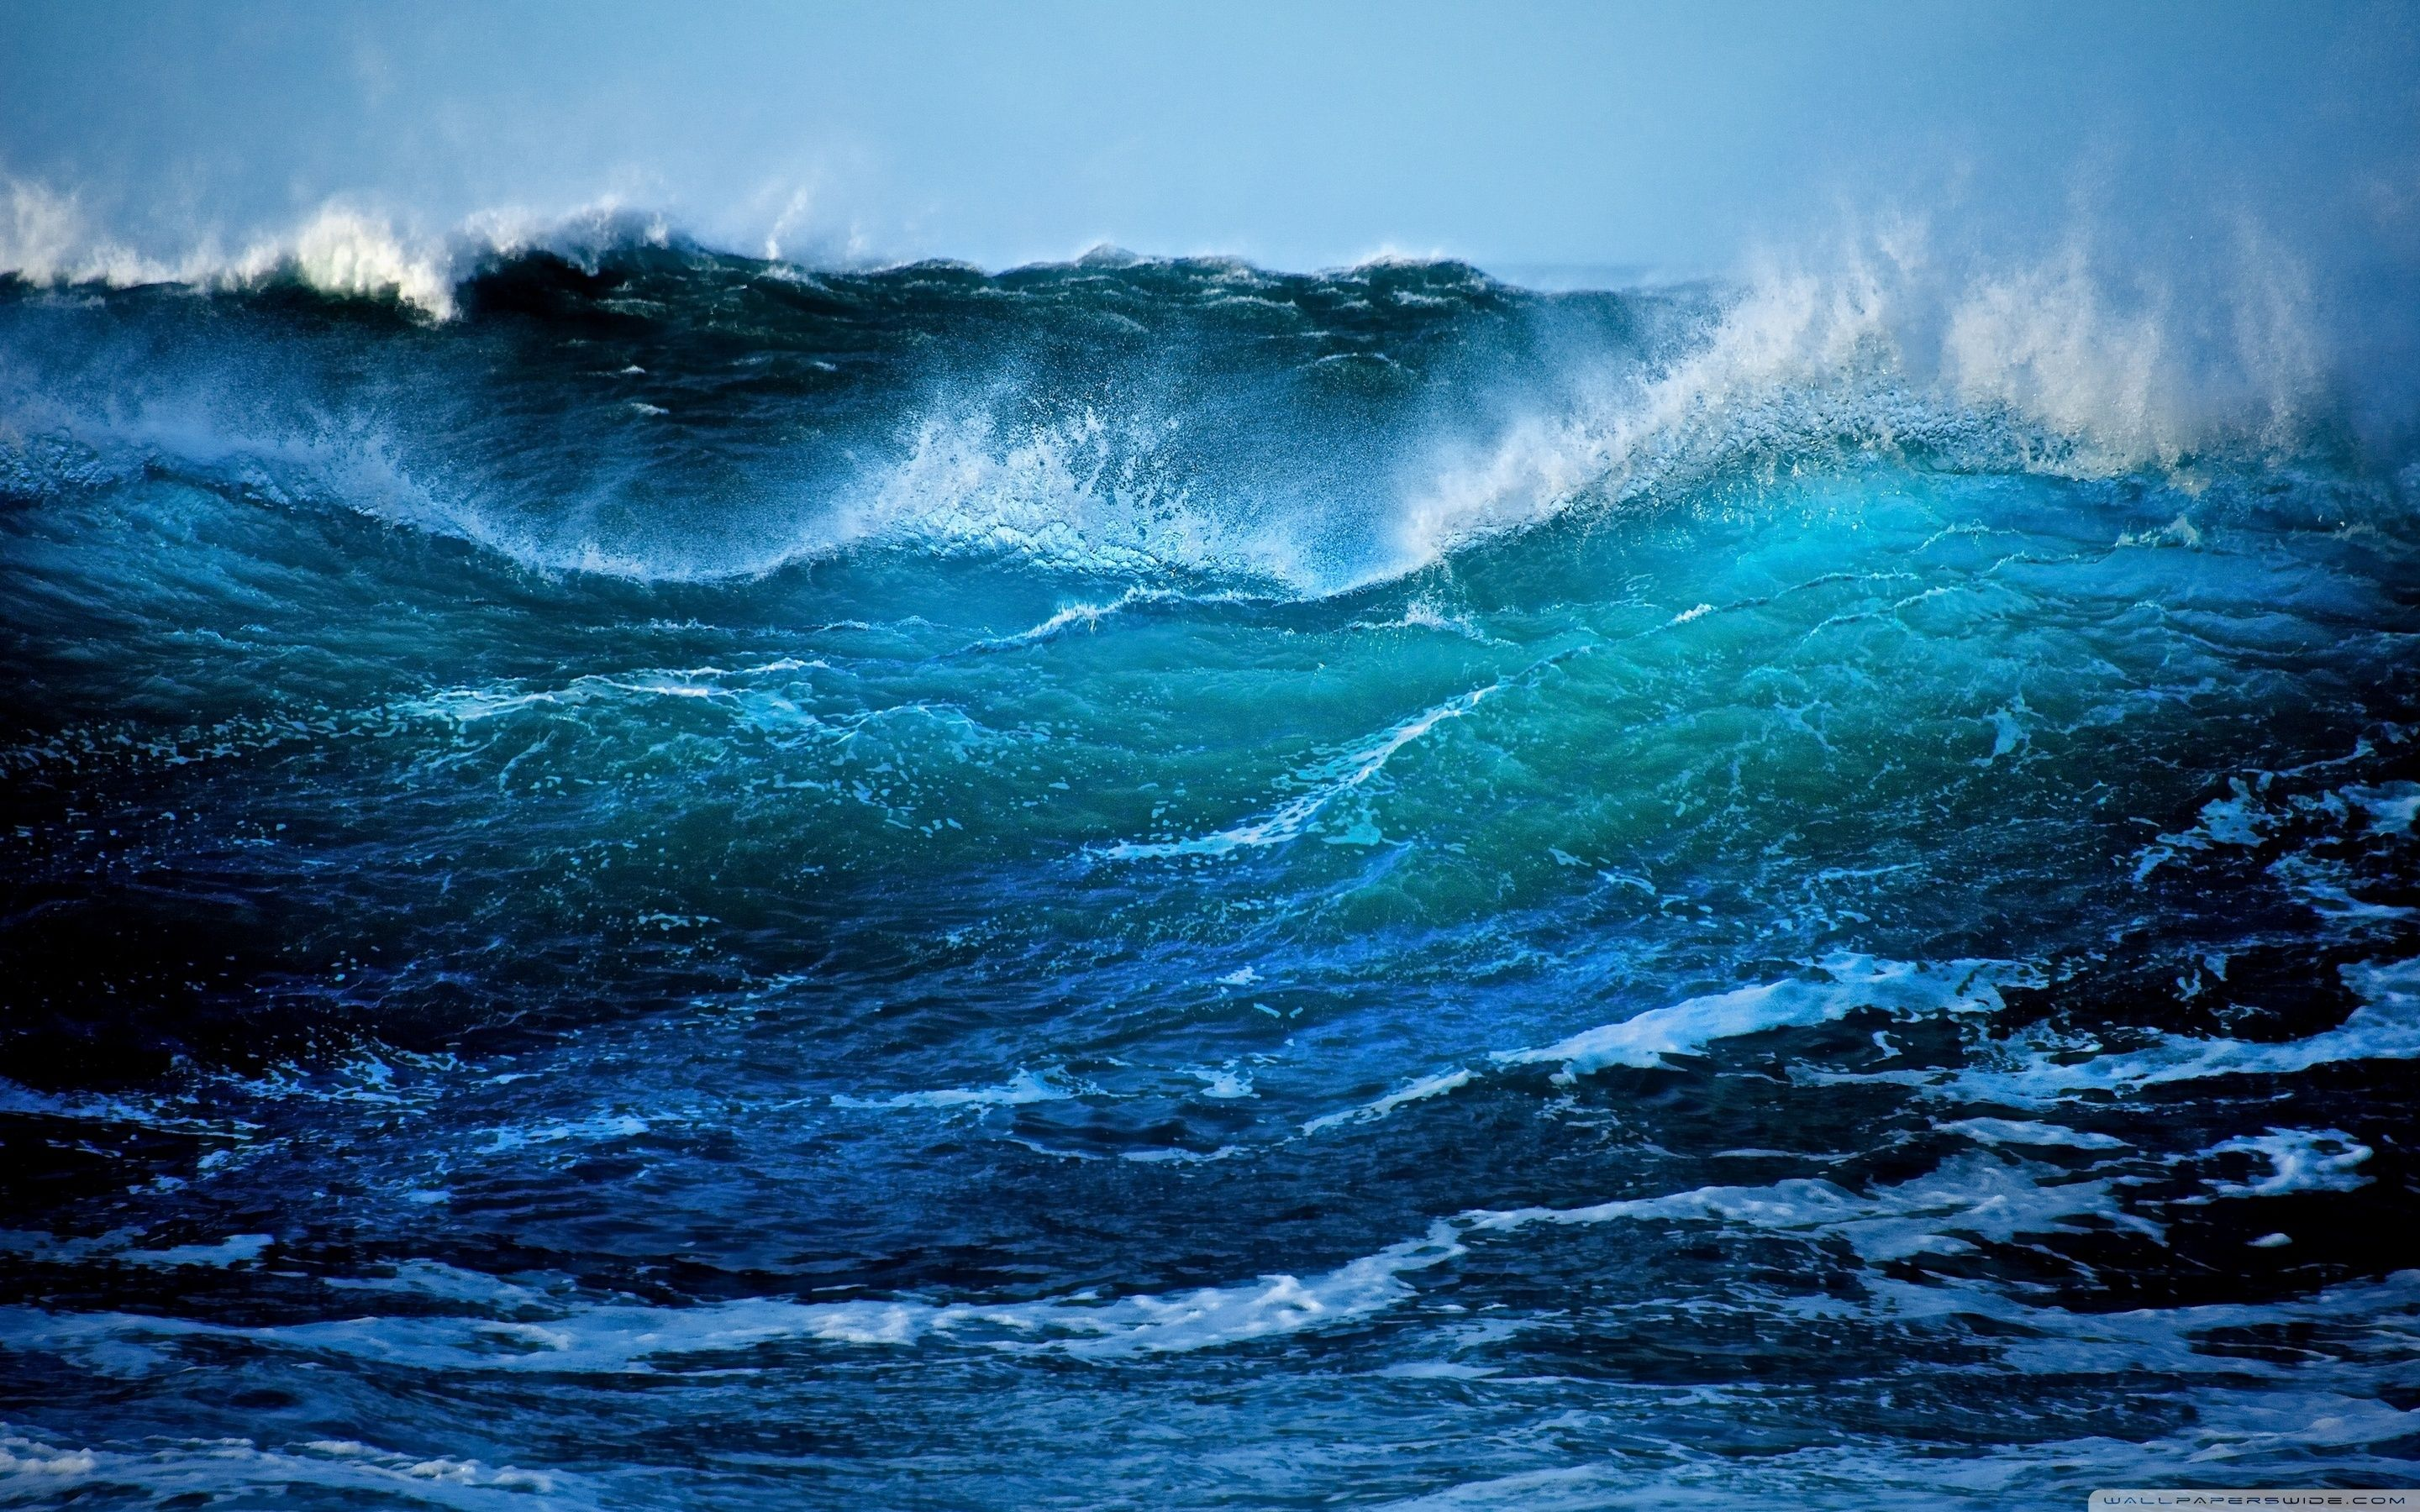 Wave Hd Desktop Wallpaper Widescreen High Definition Storm Wallpaper Waves Wallpaper Ocean Storm